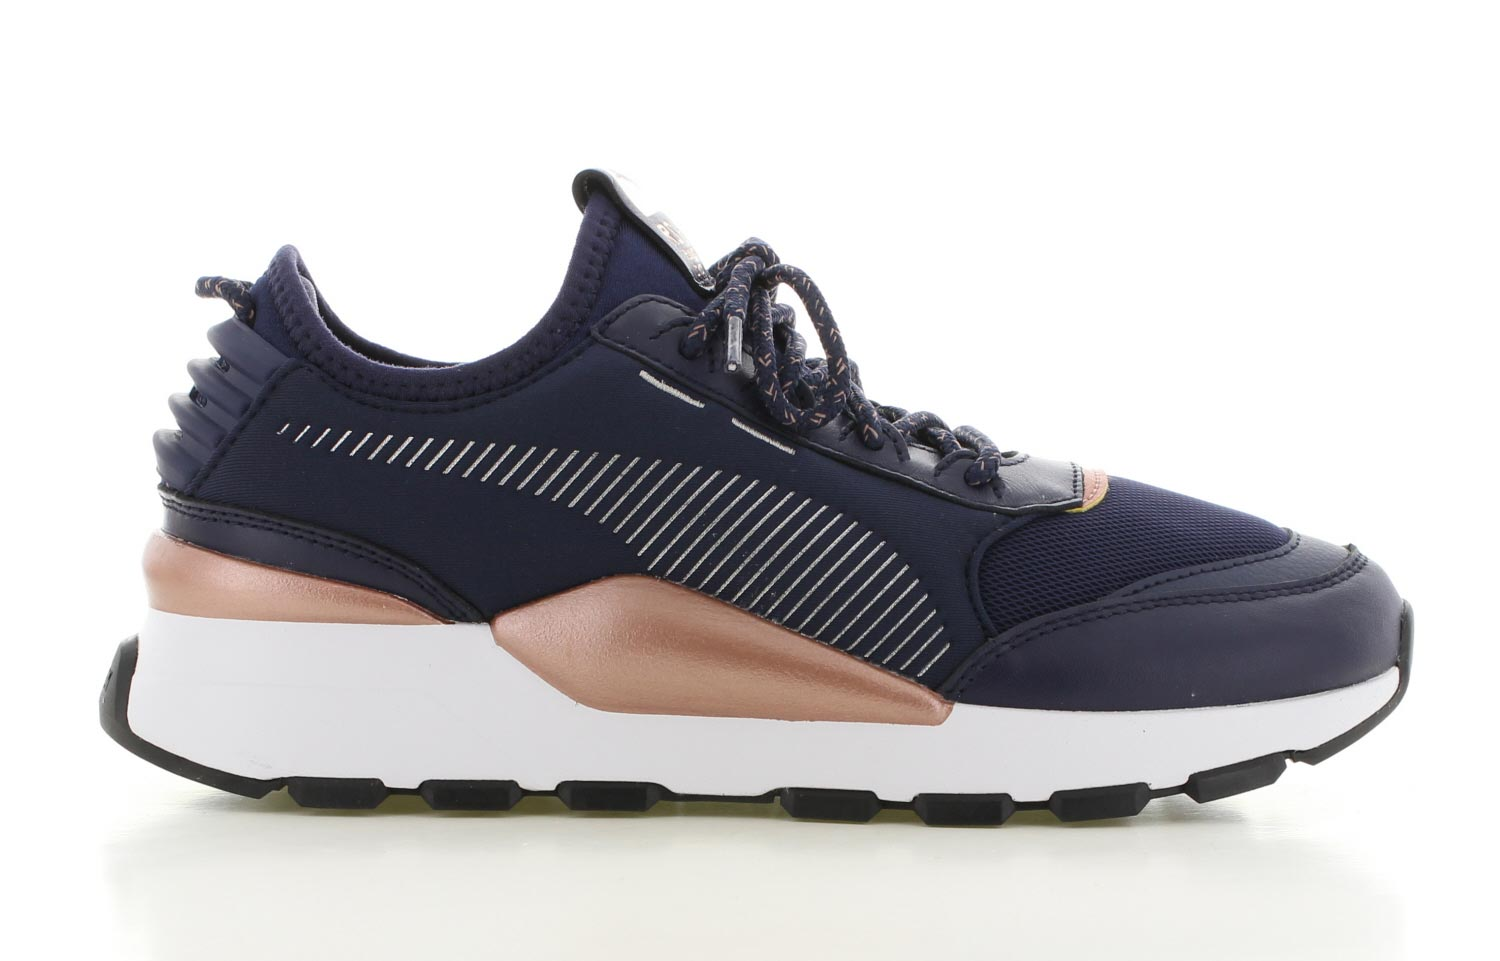 Image of Puma Rs-0 Trophy Blauw/roze Dames